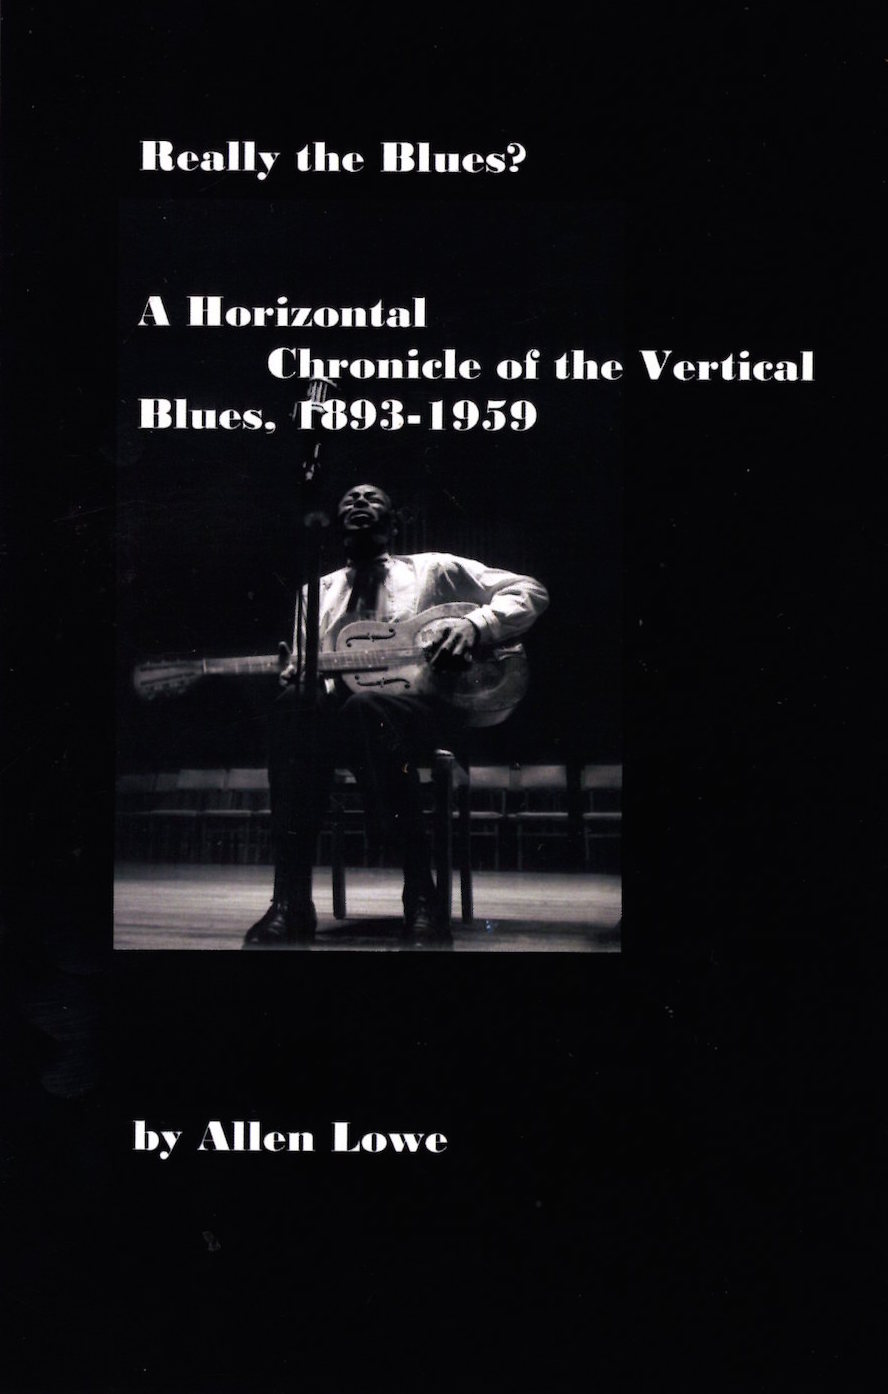 Really the Blues? A Horizontal Chronicle of the Vertical Blues 1893-1959